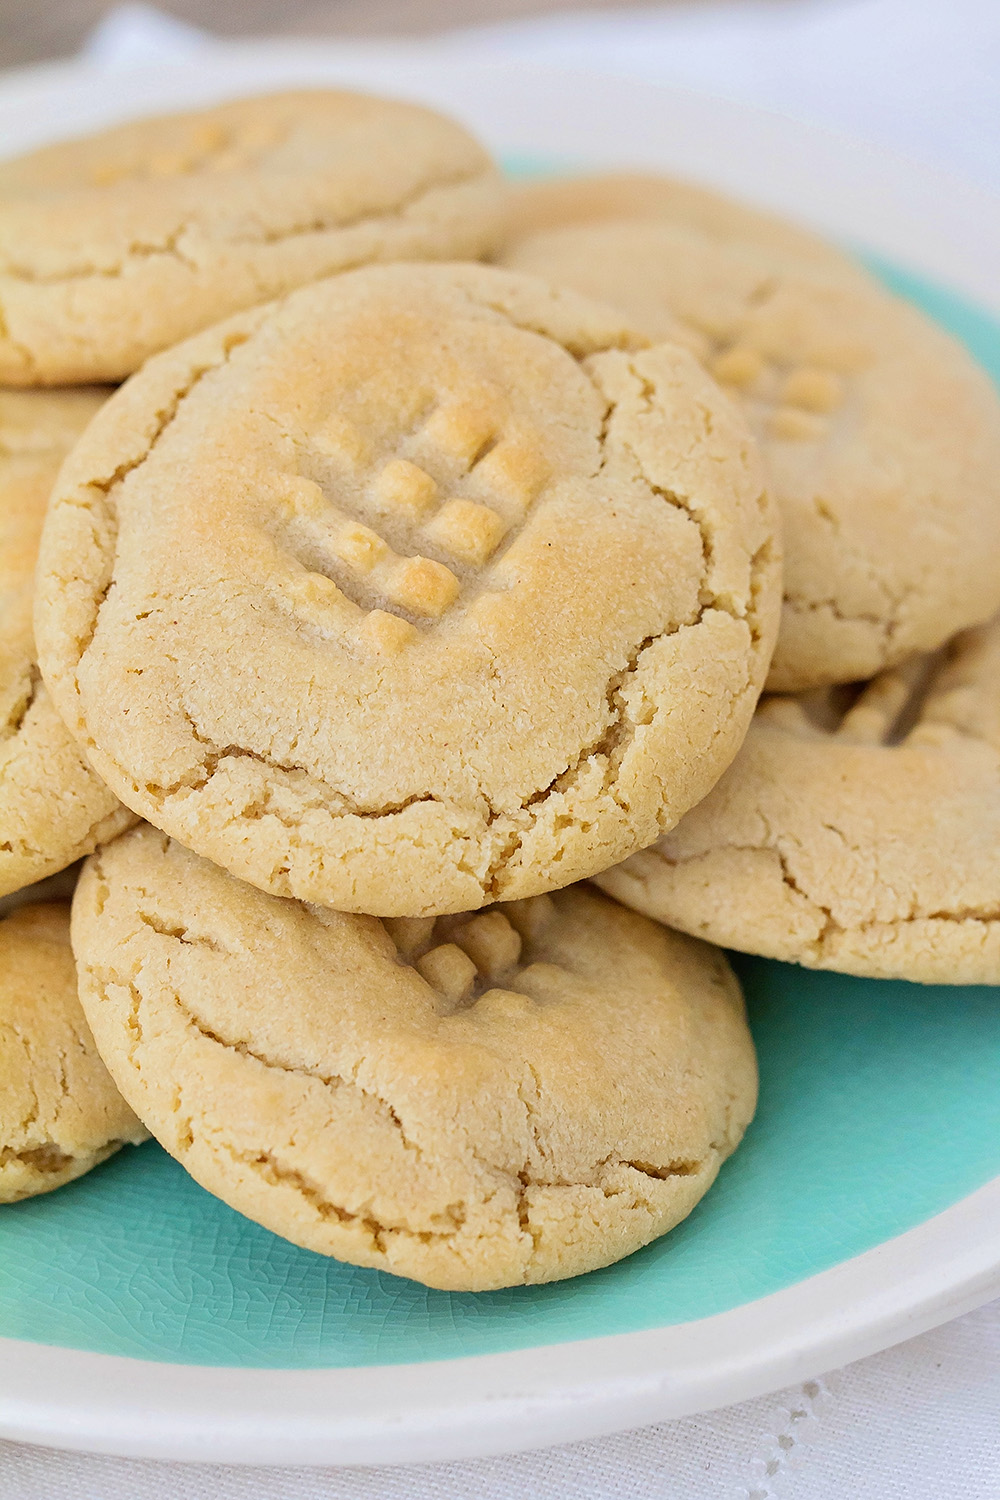 These caramel stuffed peanut butter cookies are so indulgent and delicious! Buttery, soft peanut butter cookies with a gooey caramel and chocolate center. Yum!